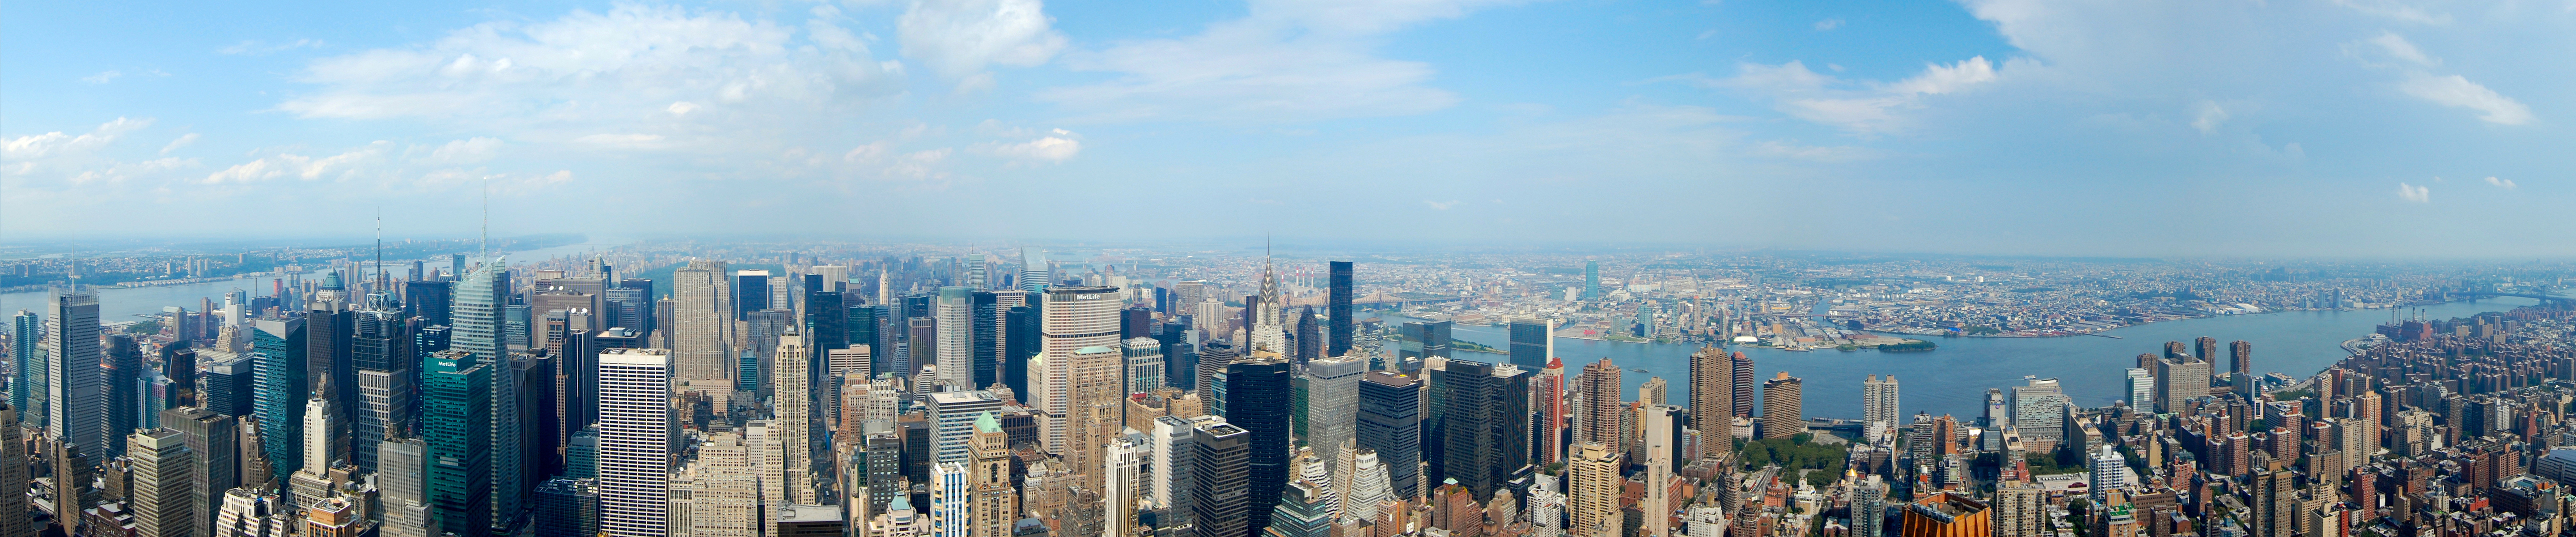 Wallpaper New York Buildings Panorama Triple monitor display 5760 5760x1200